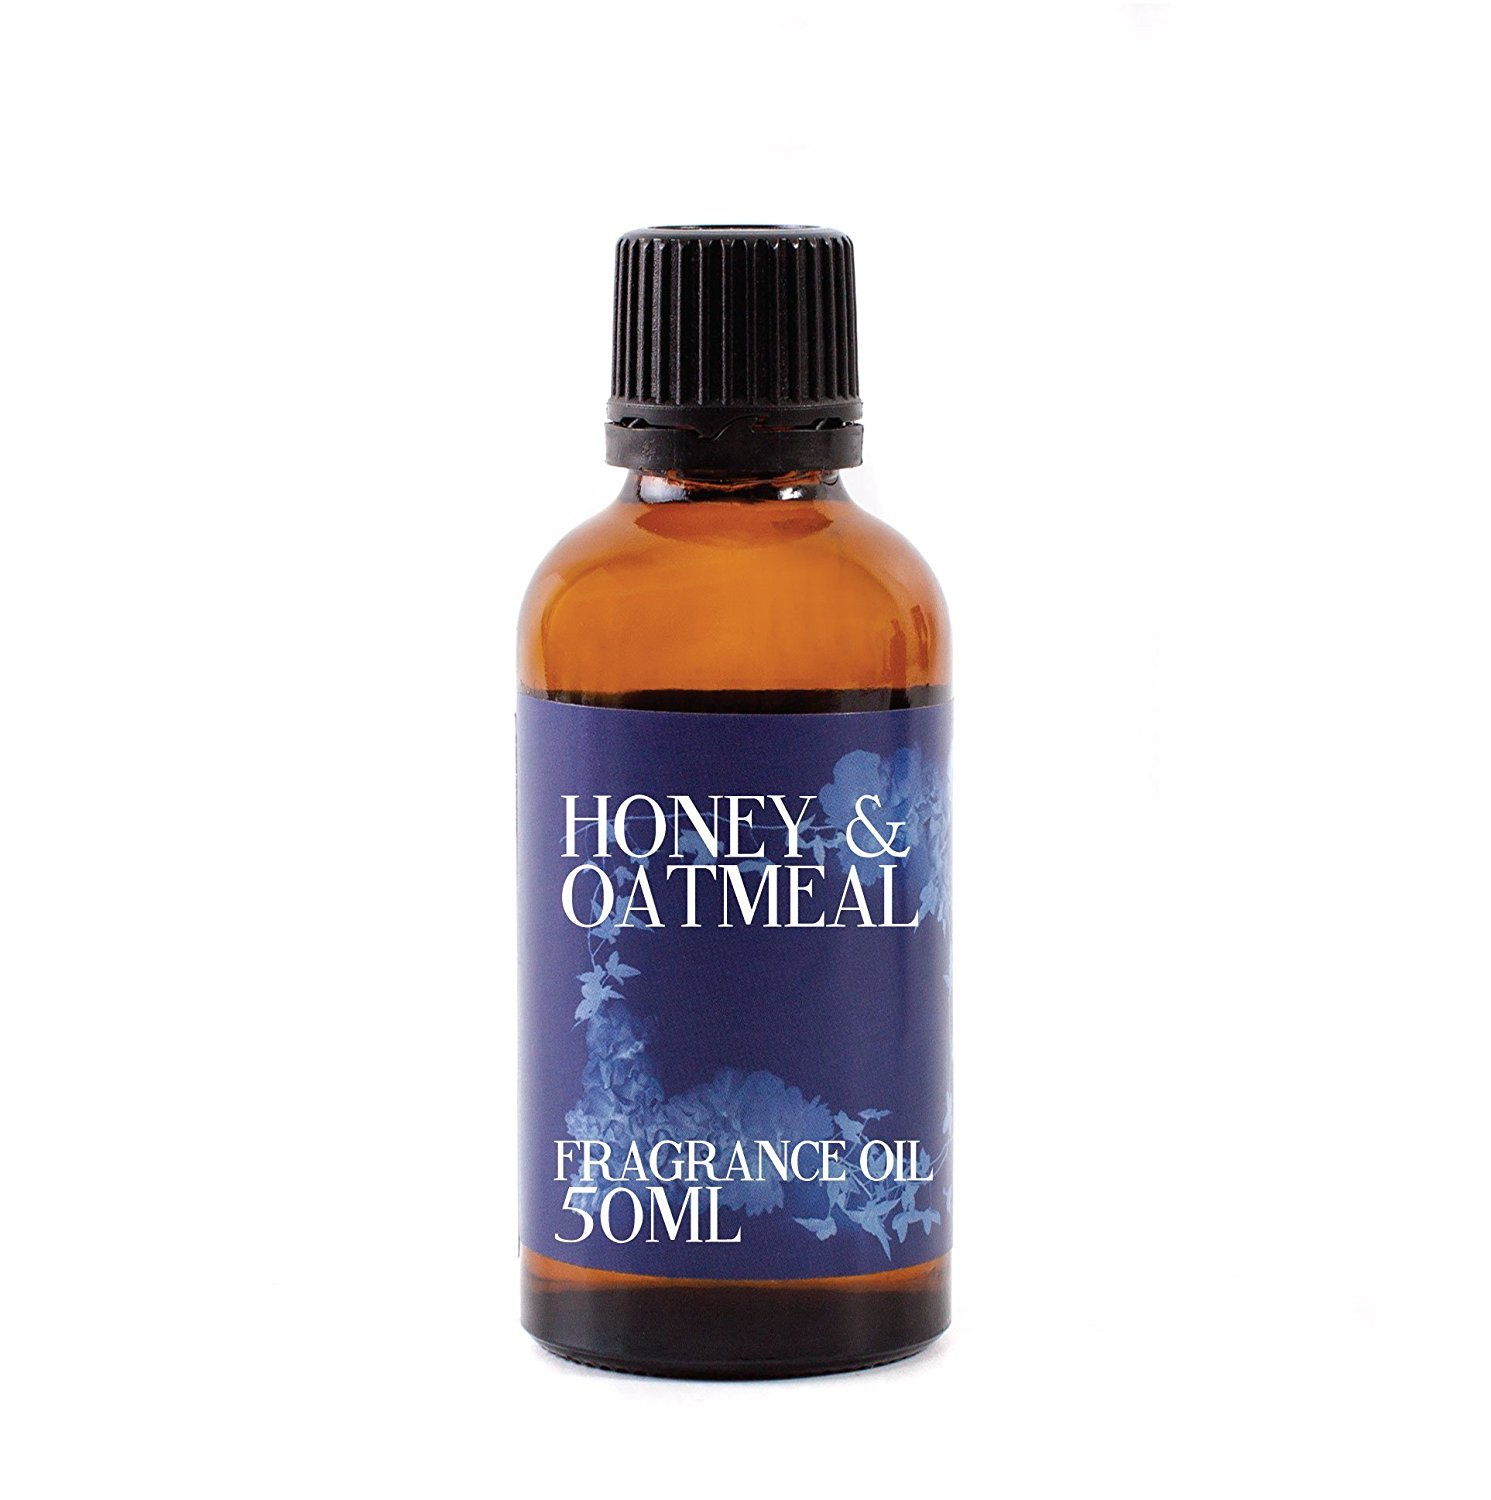 Mystic Moments | Honey & Oatmeal Fragrance Oil - 50ml FOHONEOAT50